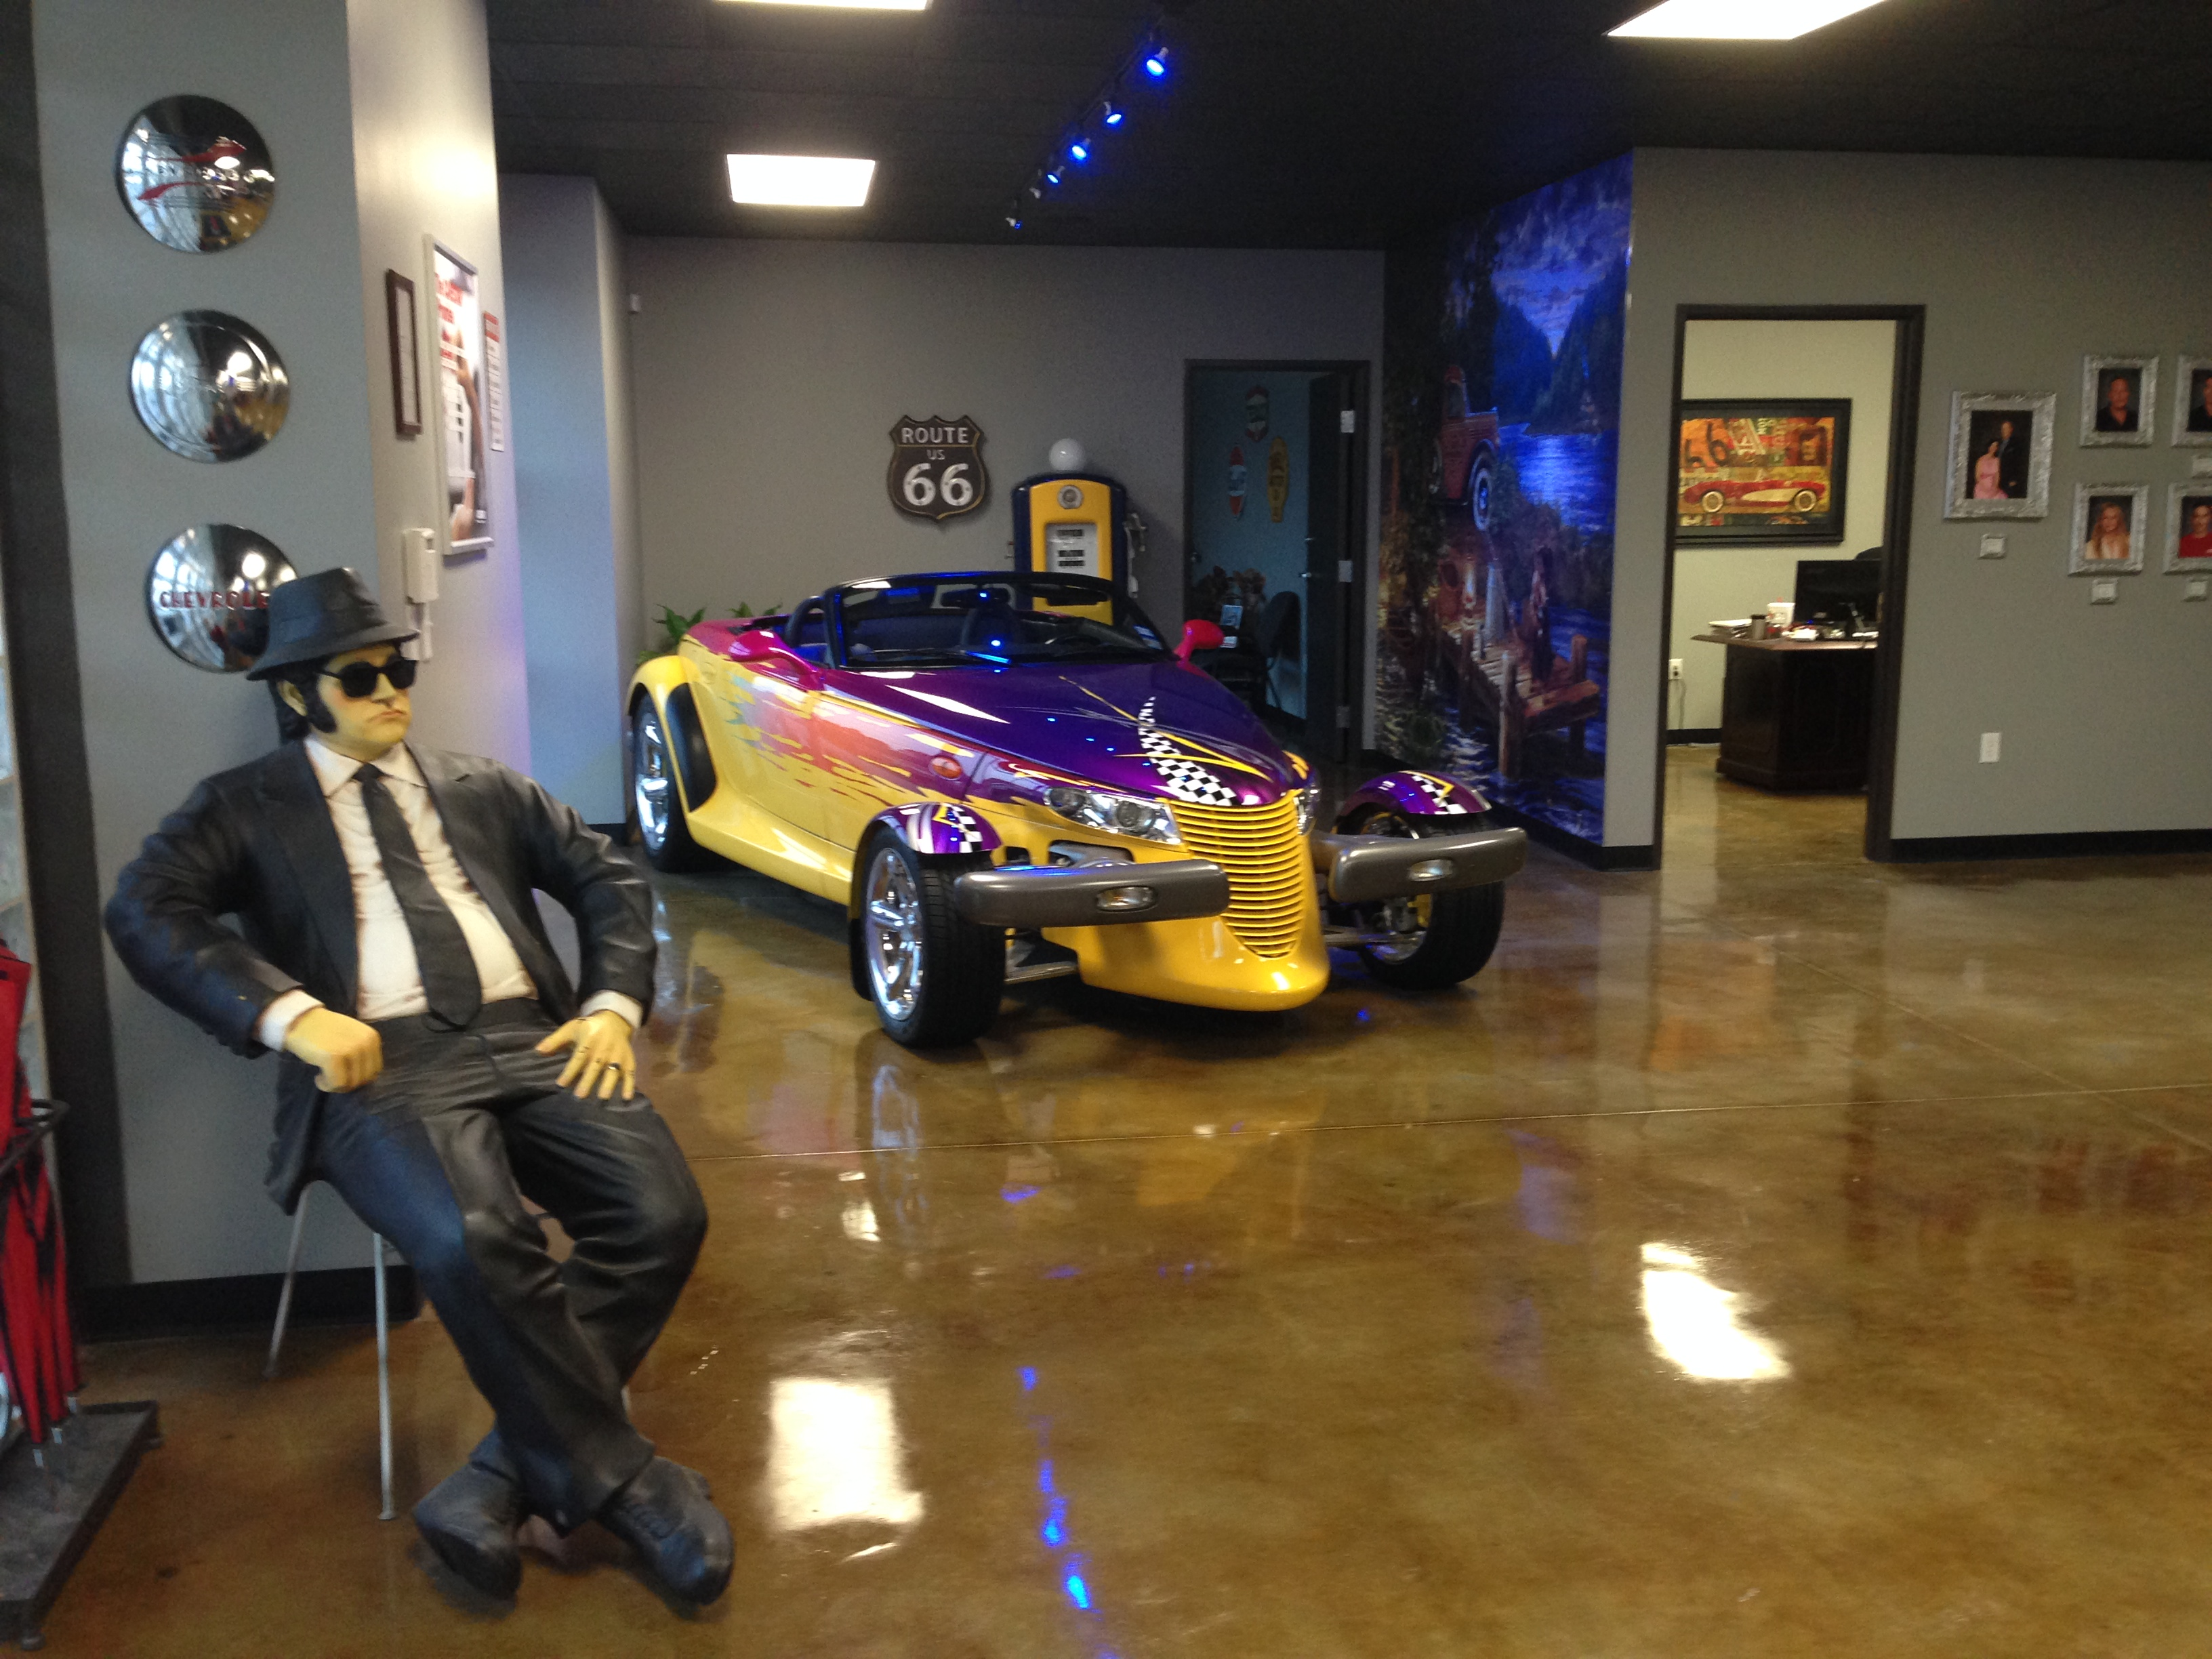 Showroom Pic #2